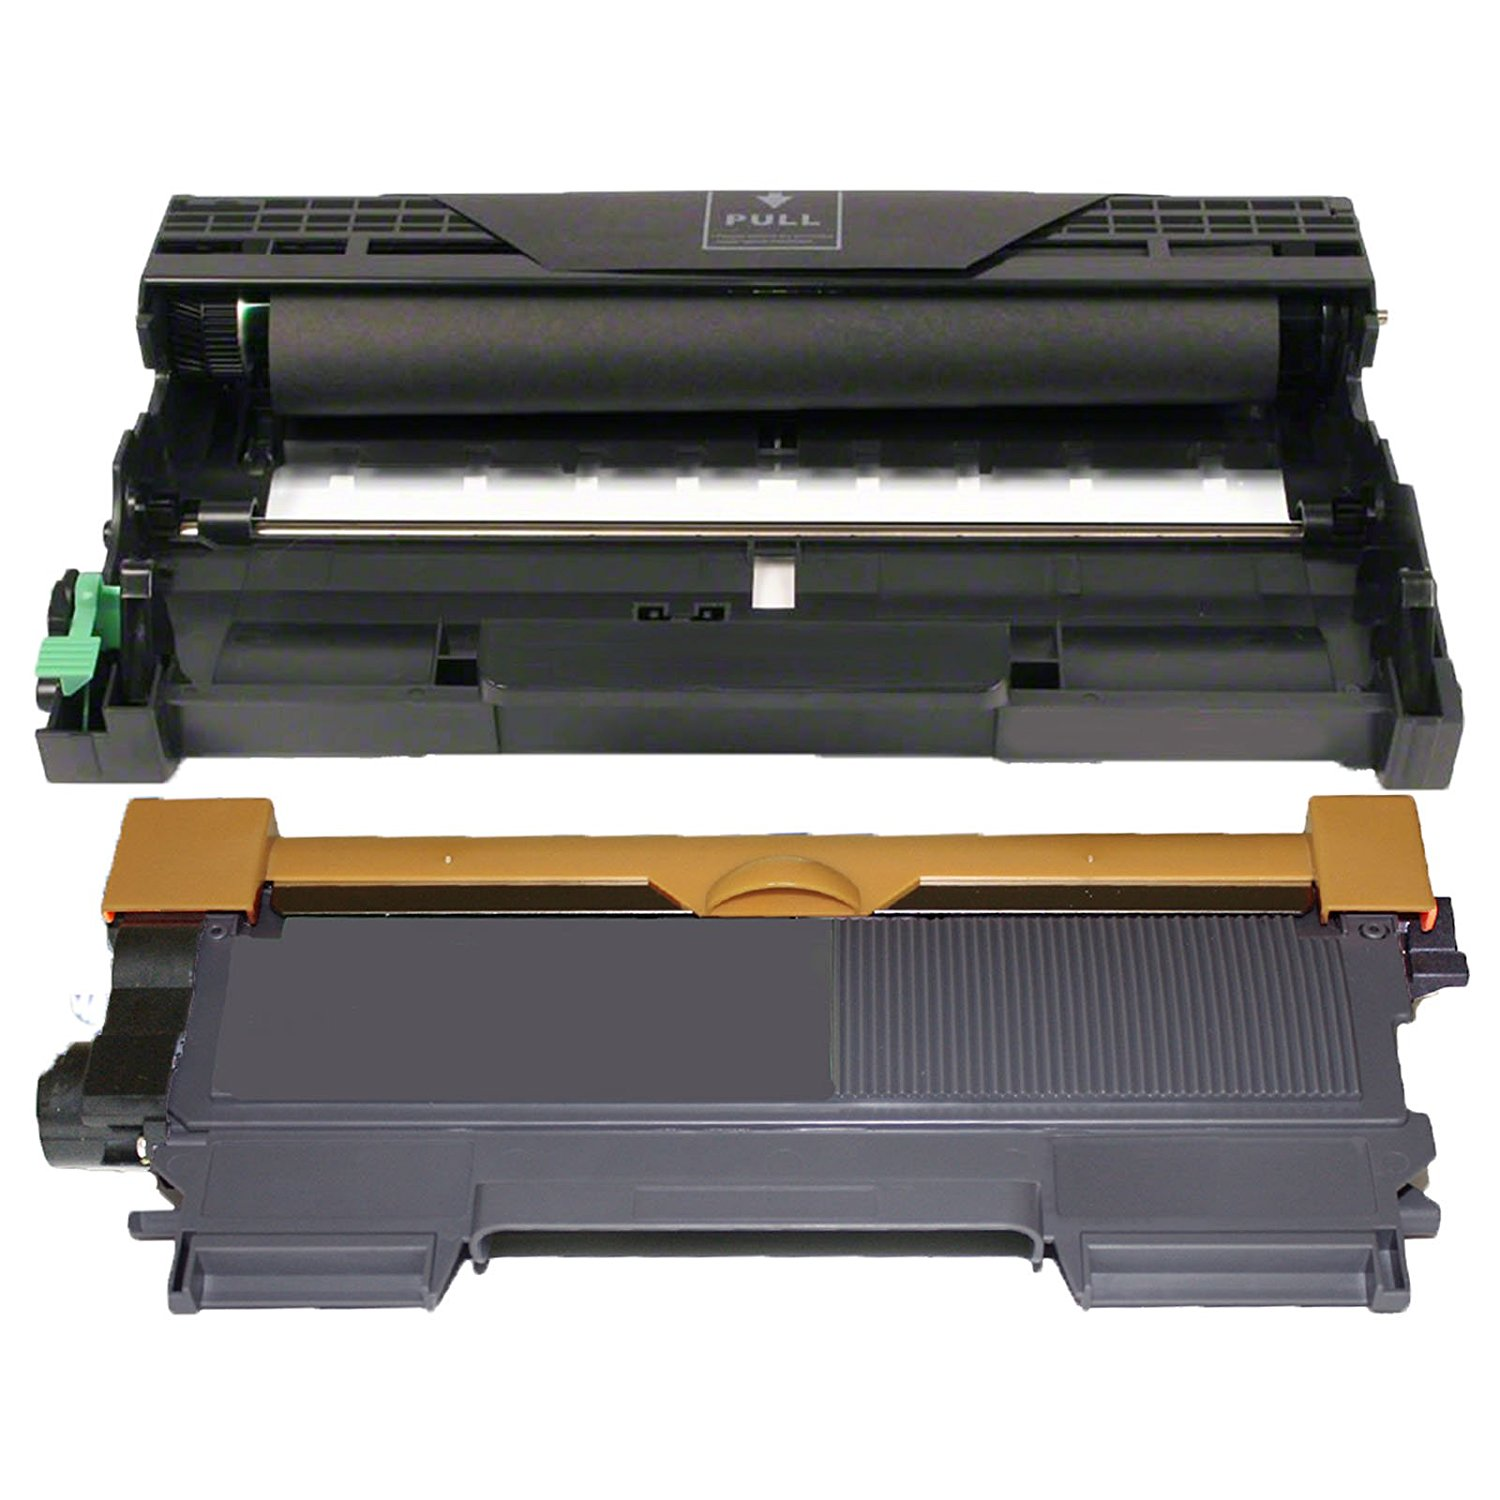 (1 Drum + 1 Toner) Inktoneram Replacement toner cartridges & drum for Brother TN450 TN420 DR420 DR-420 TN-450 TN-420 Set DCP-7060D DCP-7065DN HL-2220 HL-2230 HL-2240 HL-2240D HL-2270DW HL-2280DW